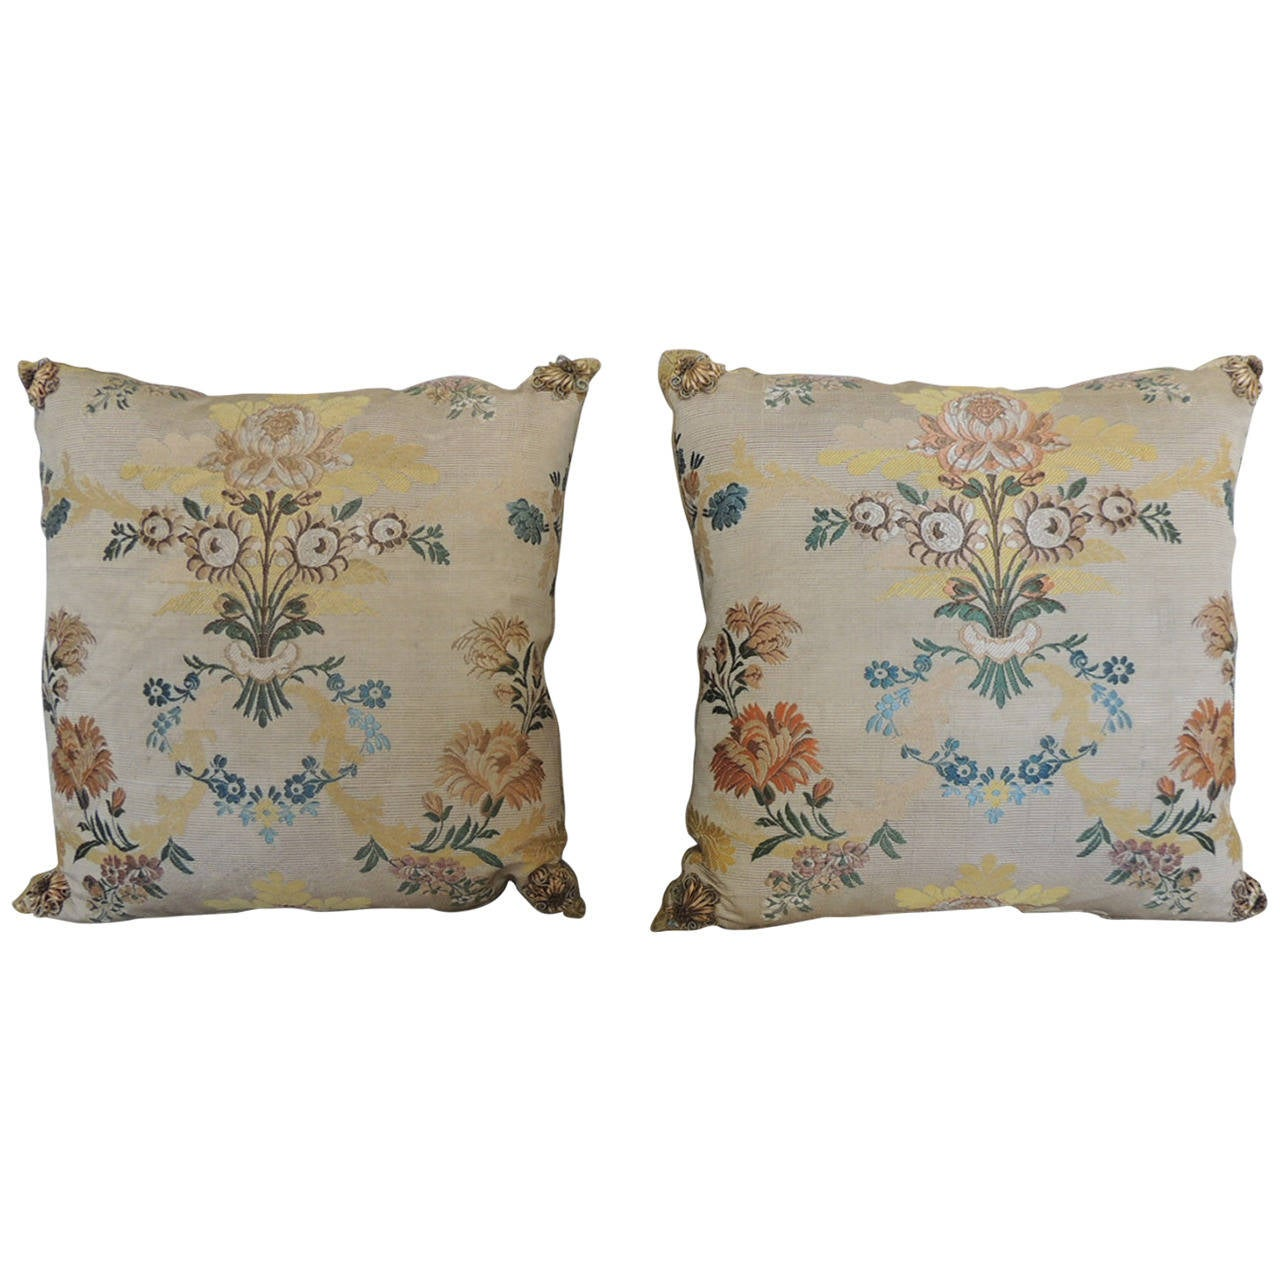 Decorative Pillows Vintage : Pair of Antique Silk Brocade Floral Blue Decorative Pillows For Sale at 1stdibs